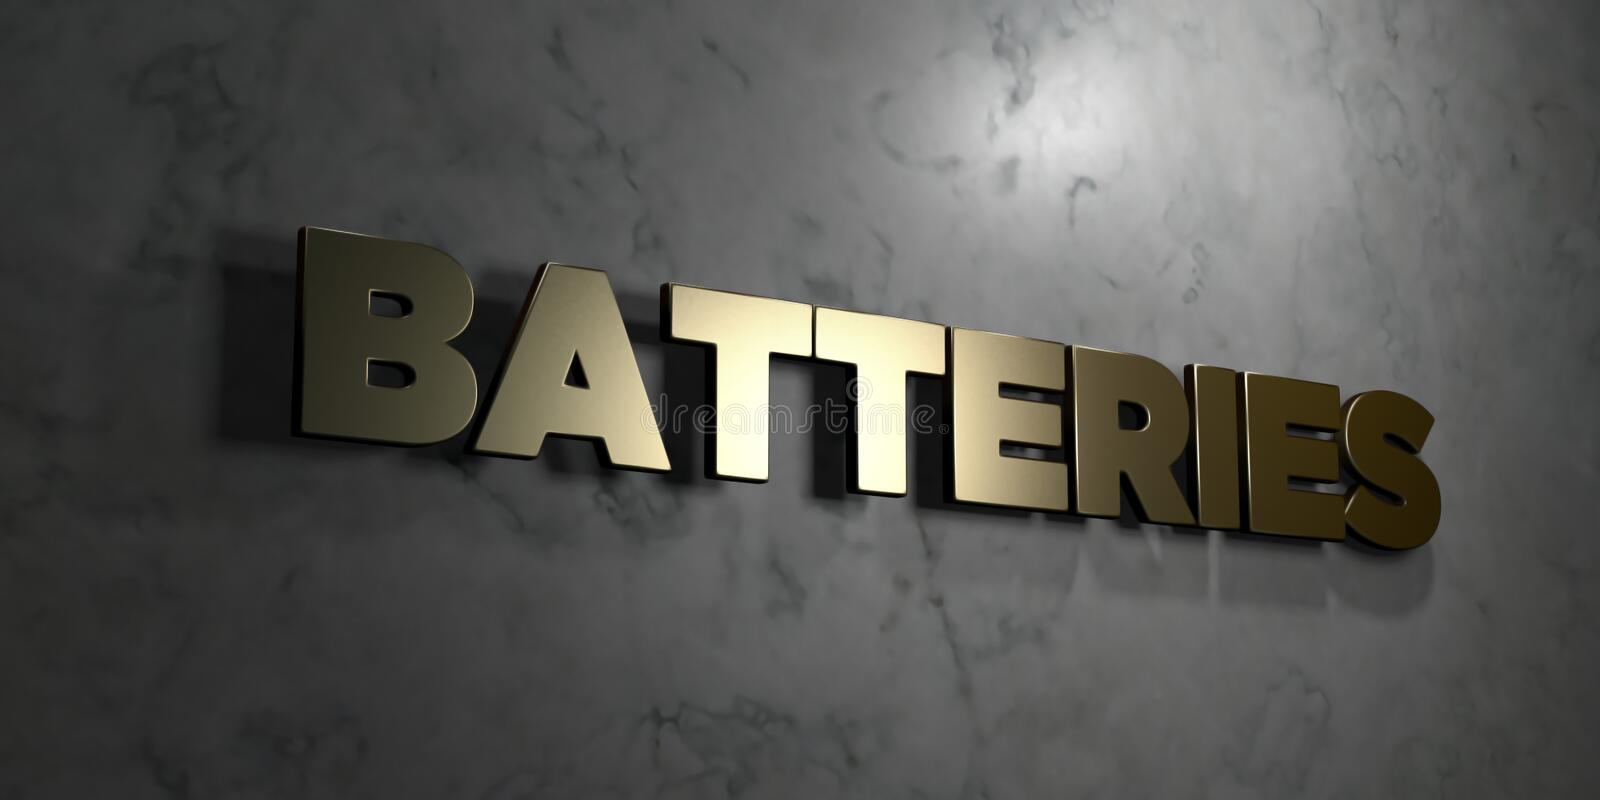 Batteries - Gold sign mounted on glossy marble wall - 3D rendered royalty free stock illustration stock illustration